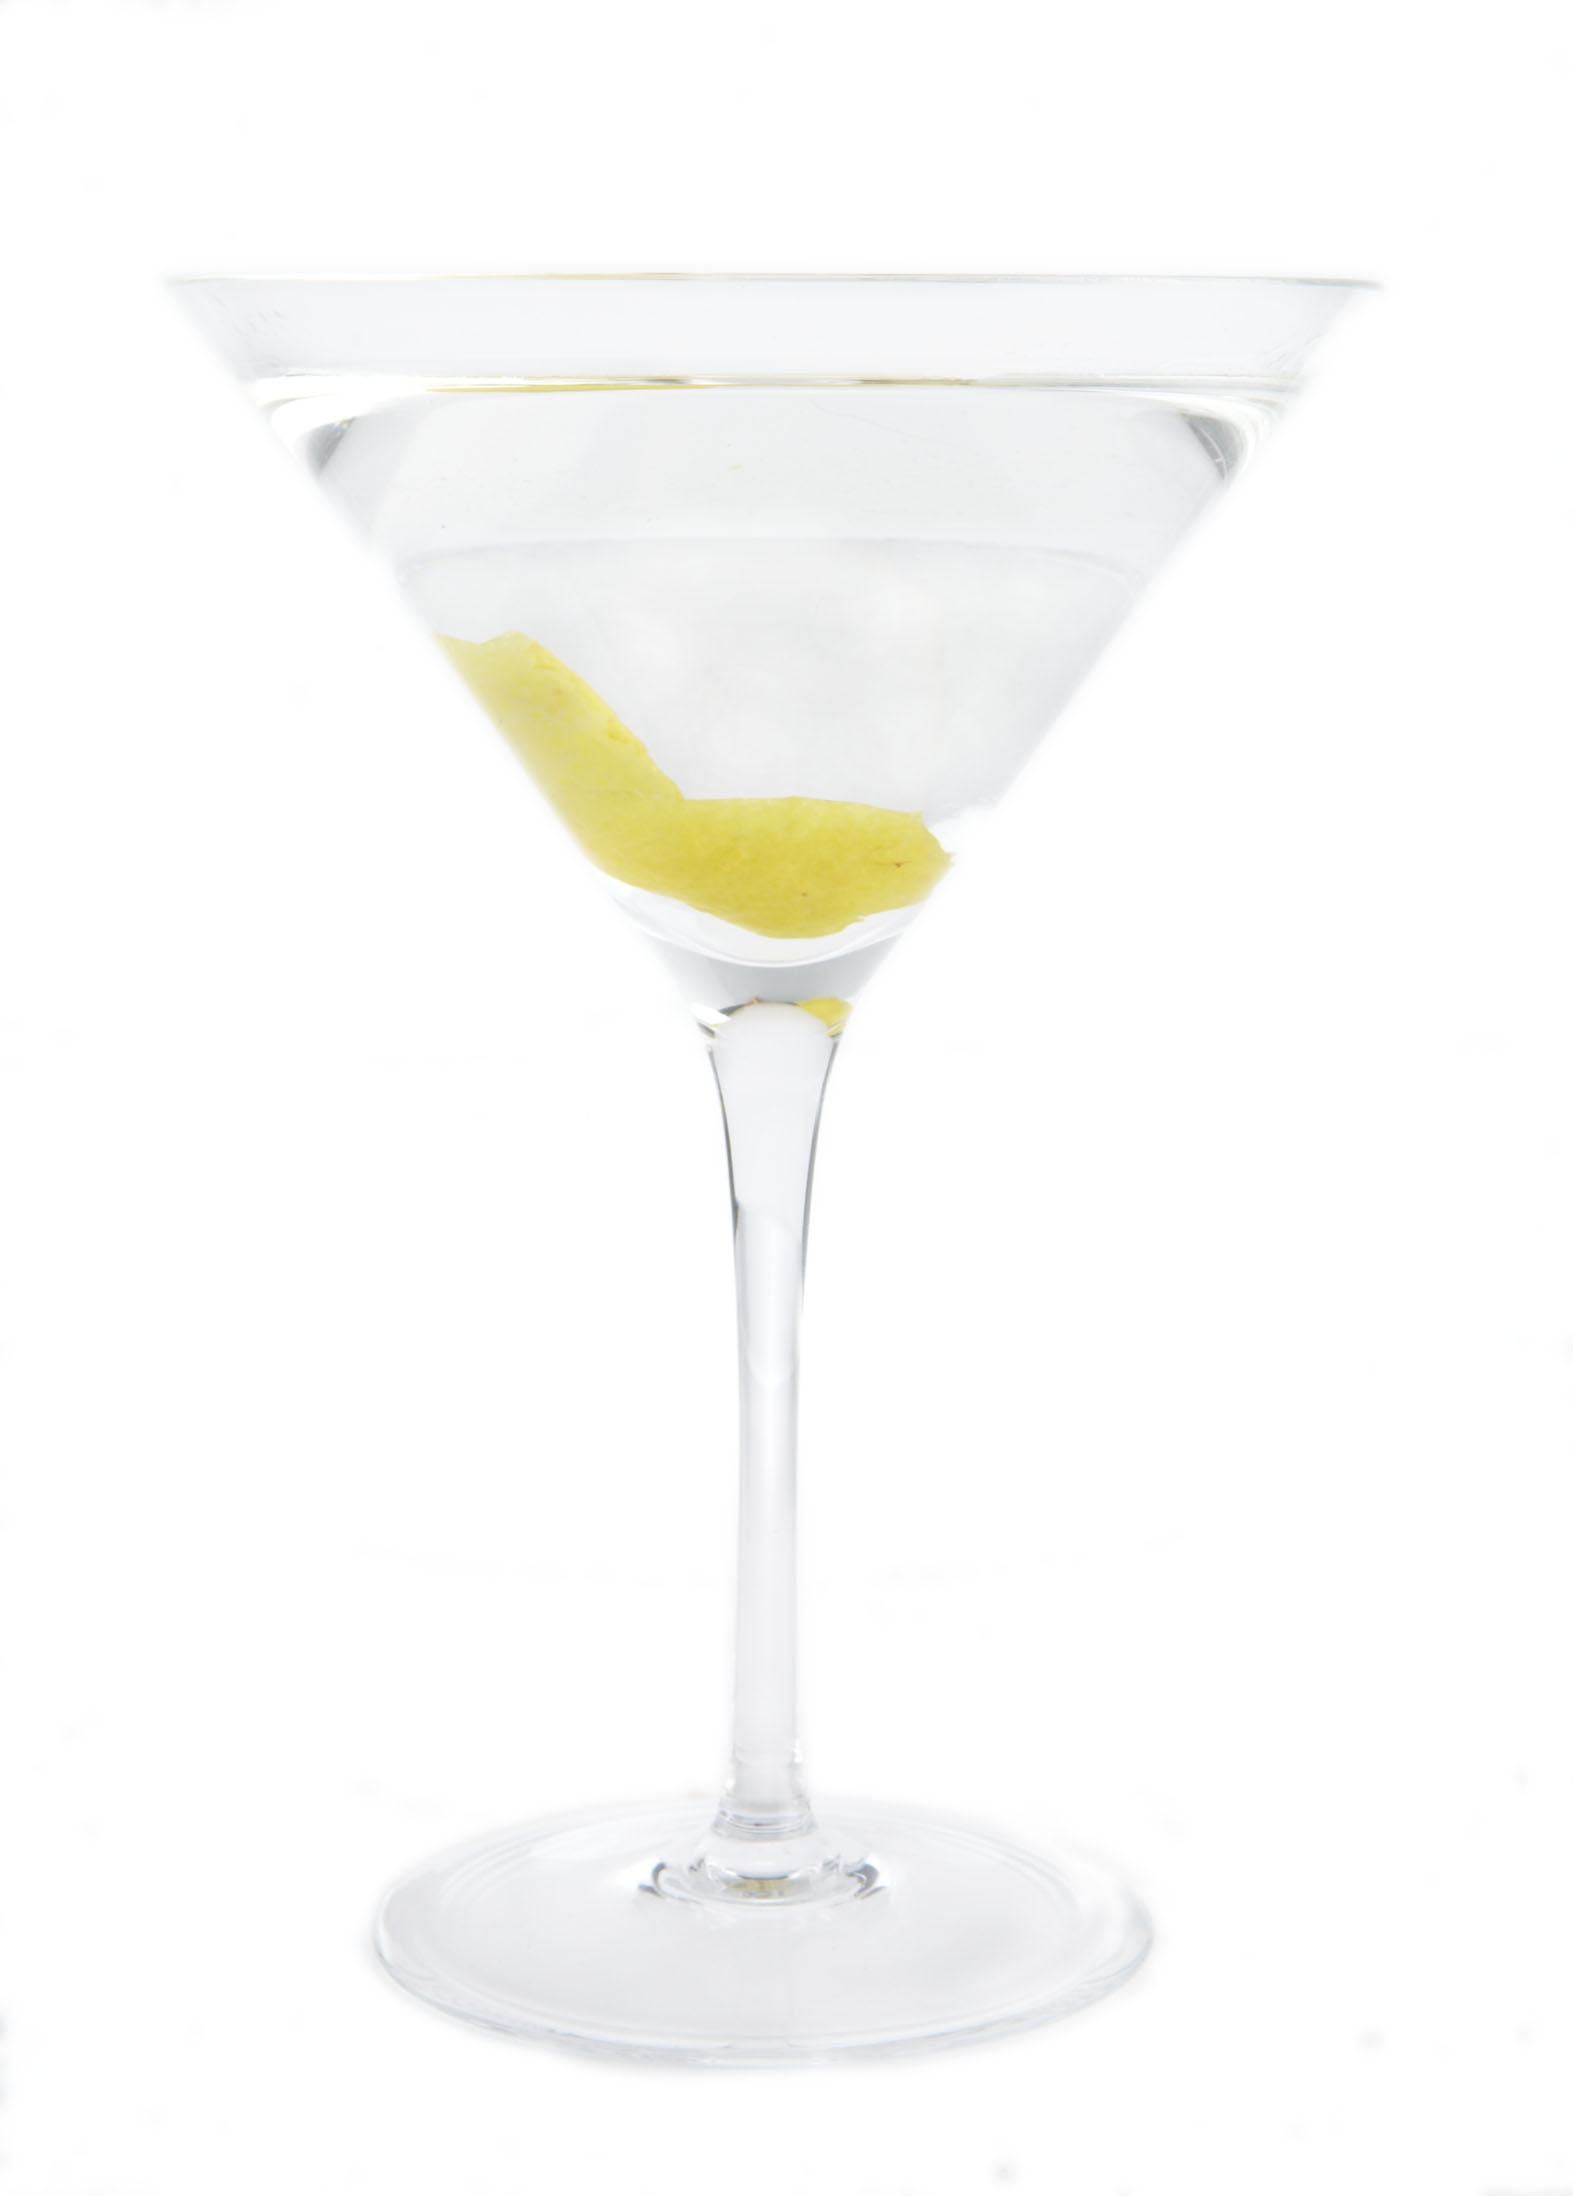 Vodka Martini - Drink Recipe – How to Make the Perfect Vodka Martini